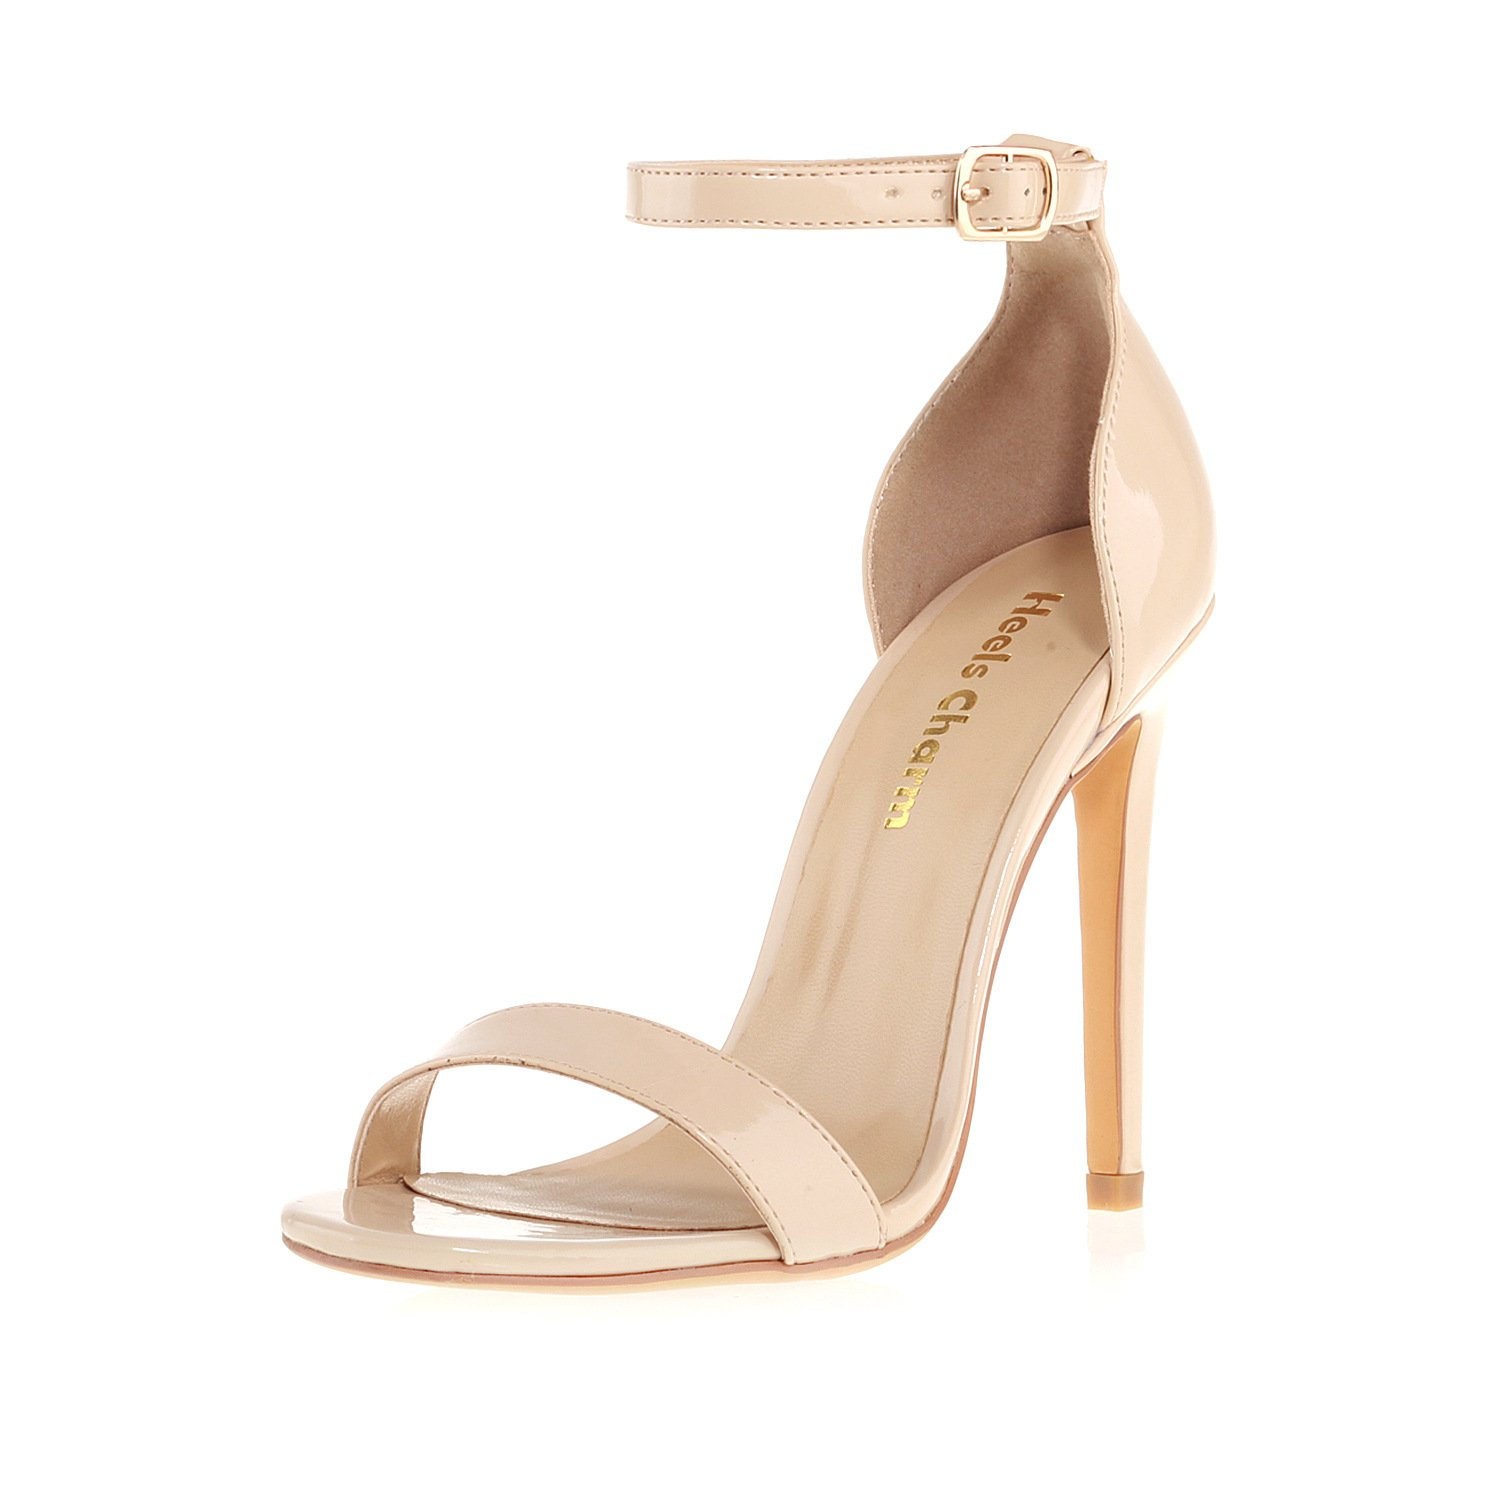 Women's Heeled Sandals Buckled Ankle Strap Dress Sandals Stilettos Open Toe High Heel Wedding Party Evening Shoes Patent Leather Nude Size 7.5